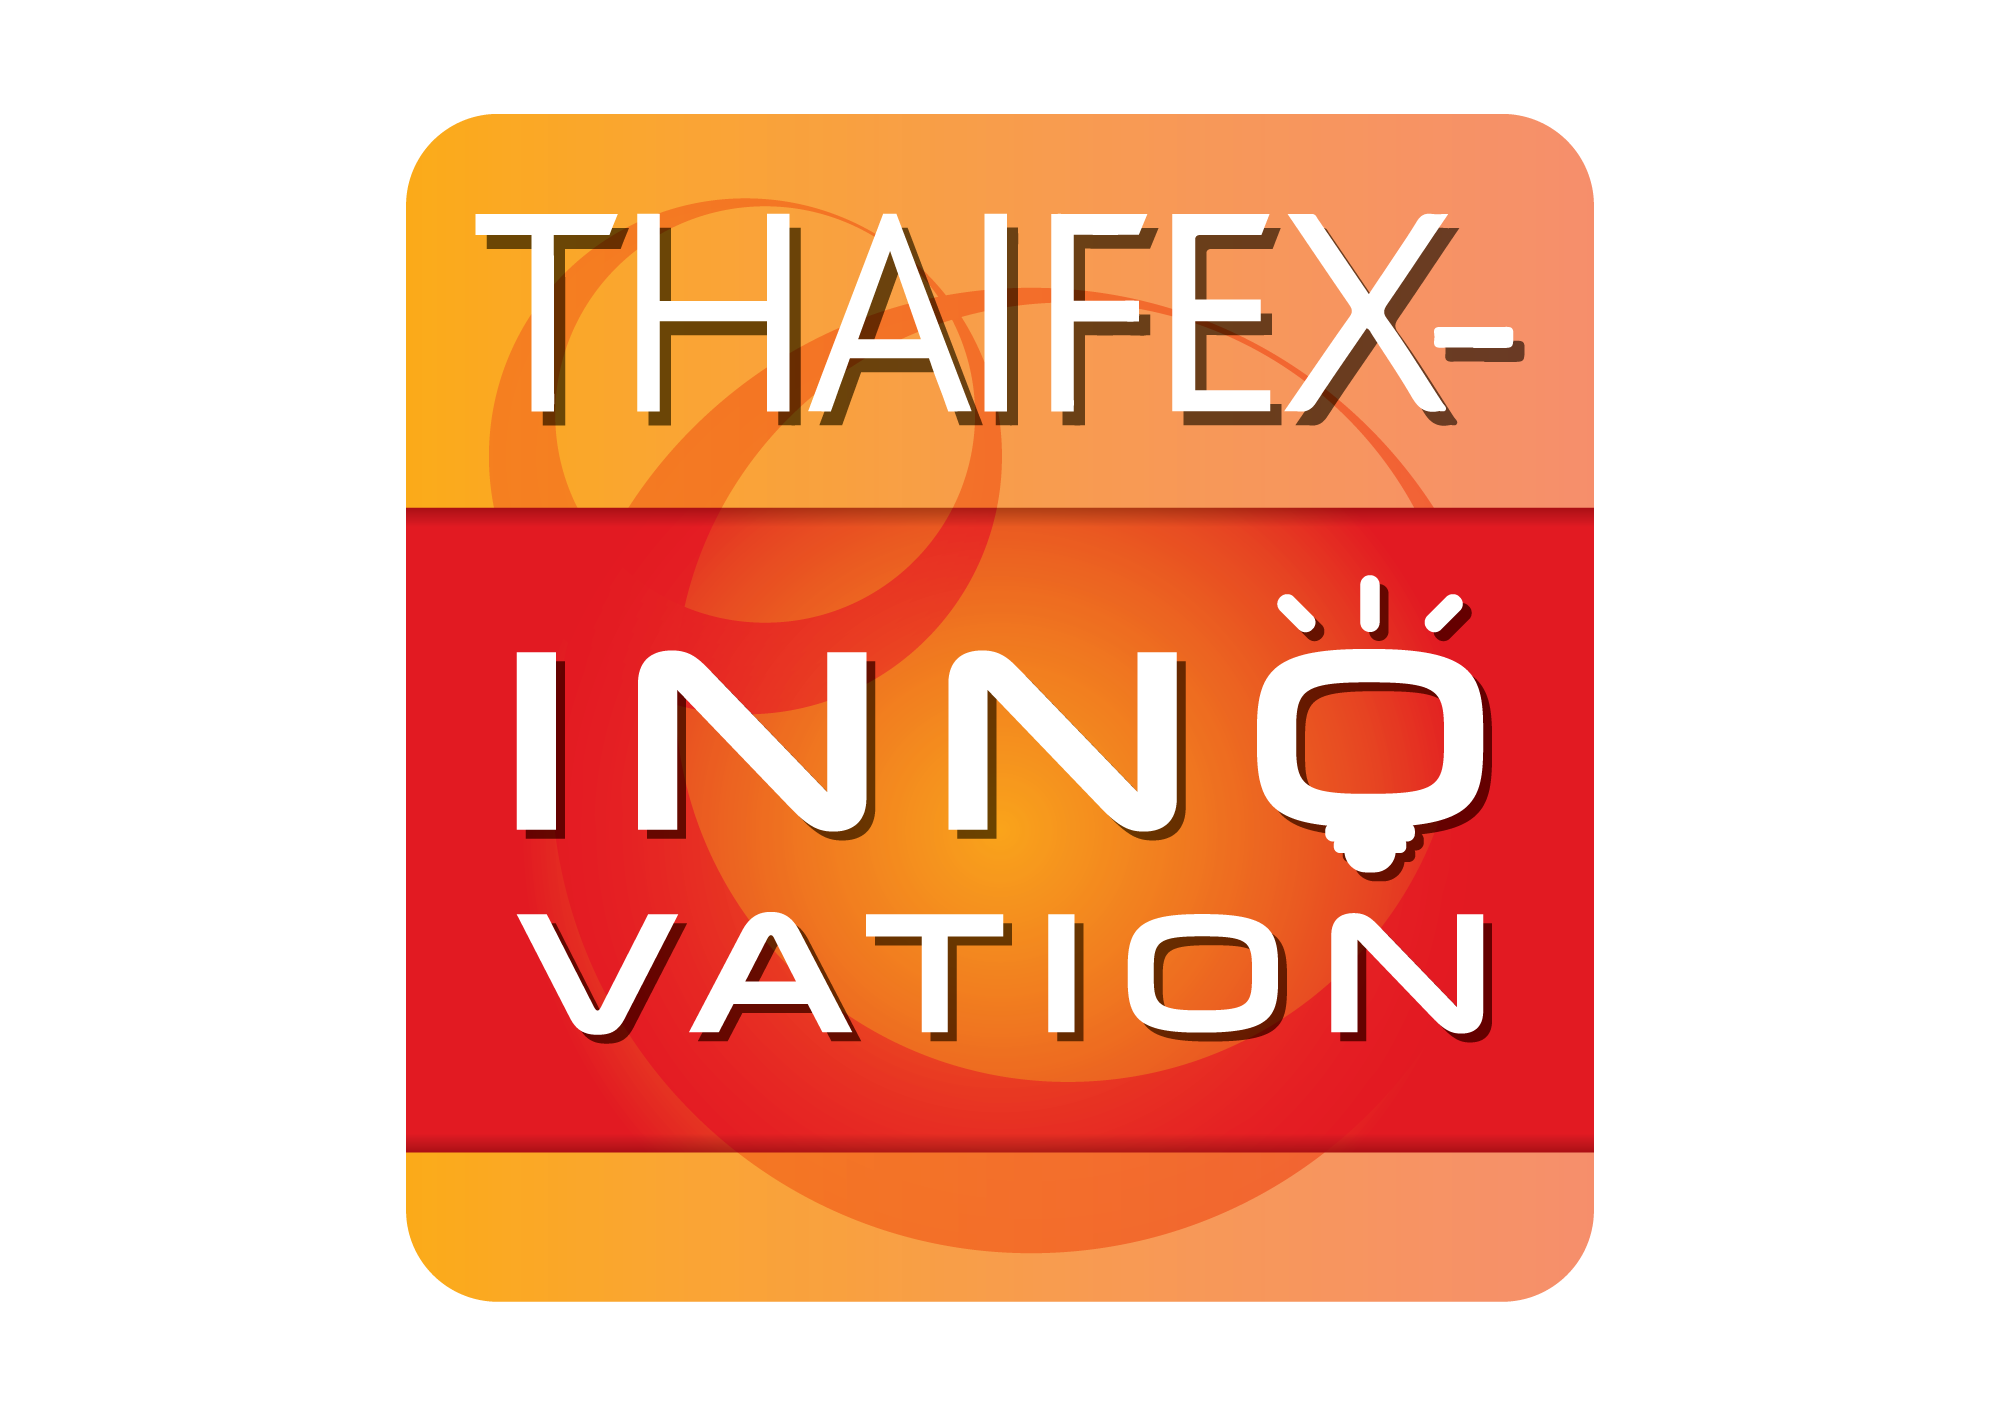 THAIFEX 2017 Innovation Award